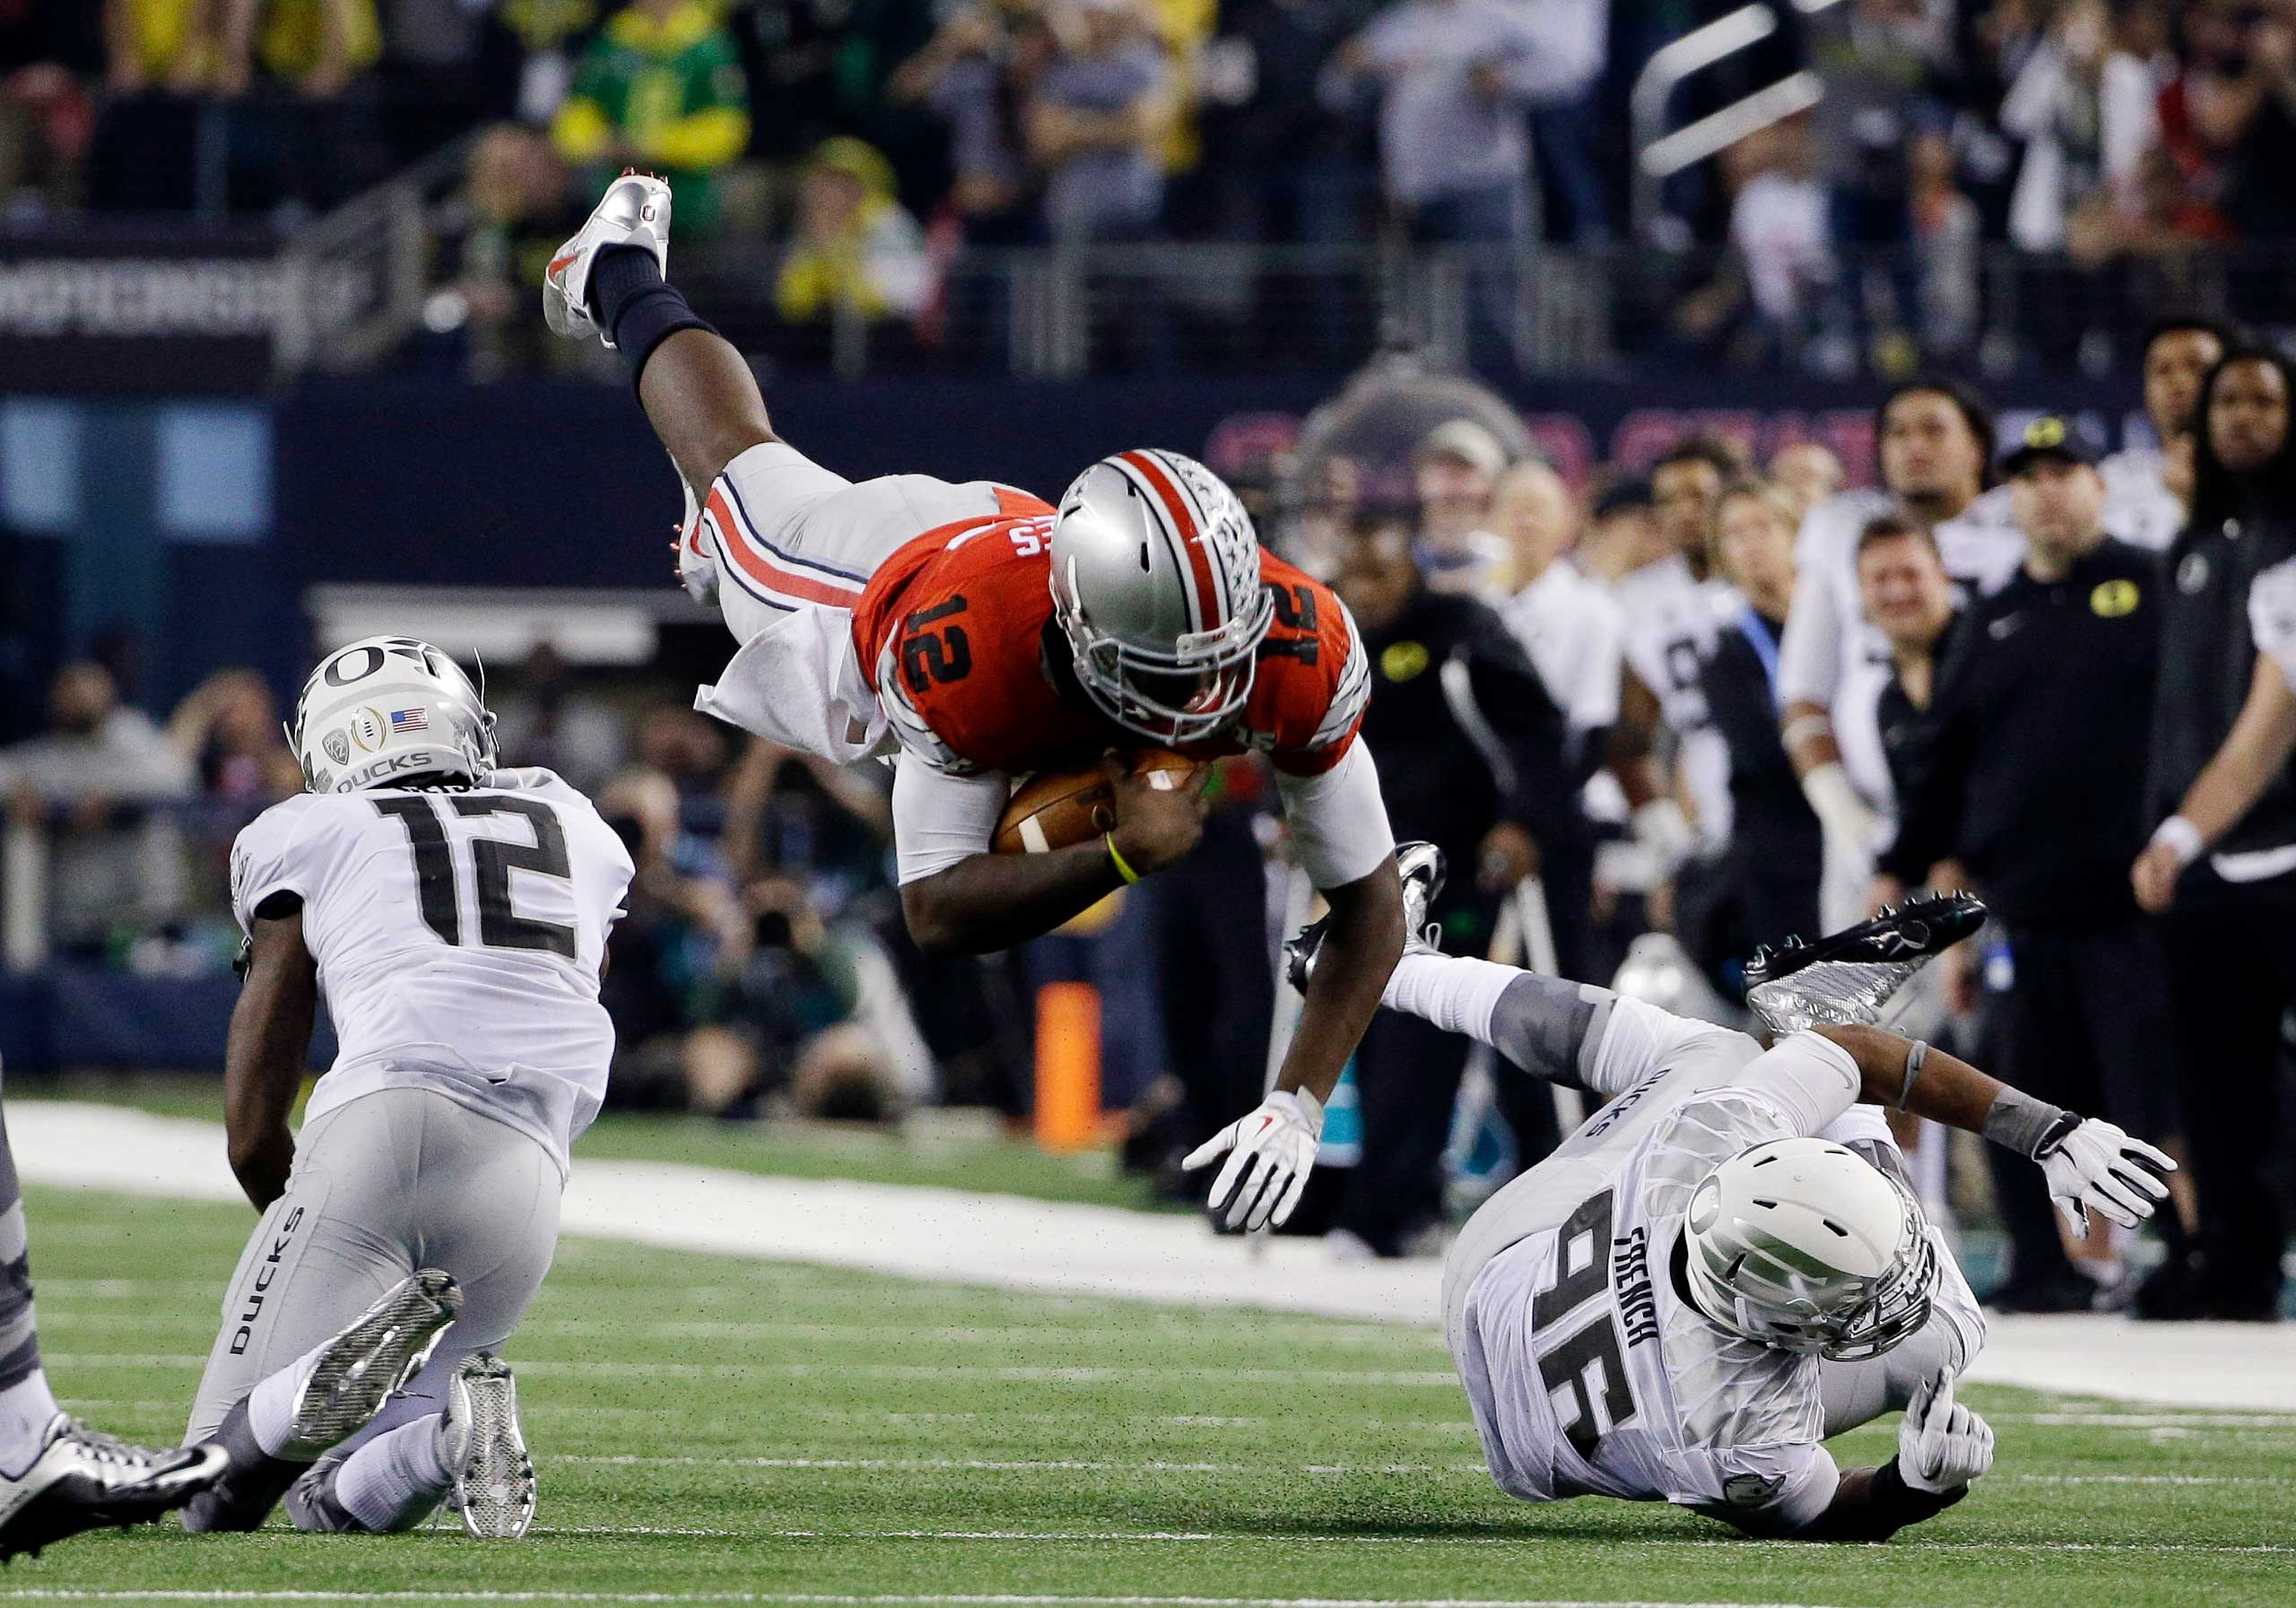 Ohio State's Cardale Jones (12) dives for a first down during the second half of the NCAA college football playoff championship game against Oregon on Jan. 12, 2015, in Arlington, Texas.